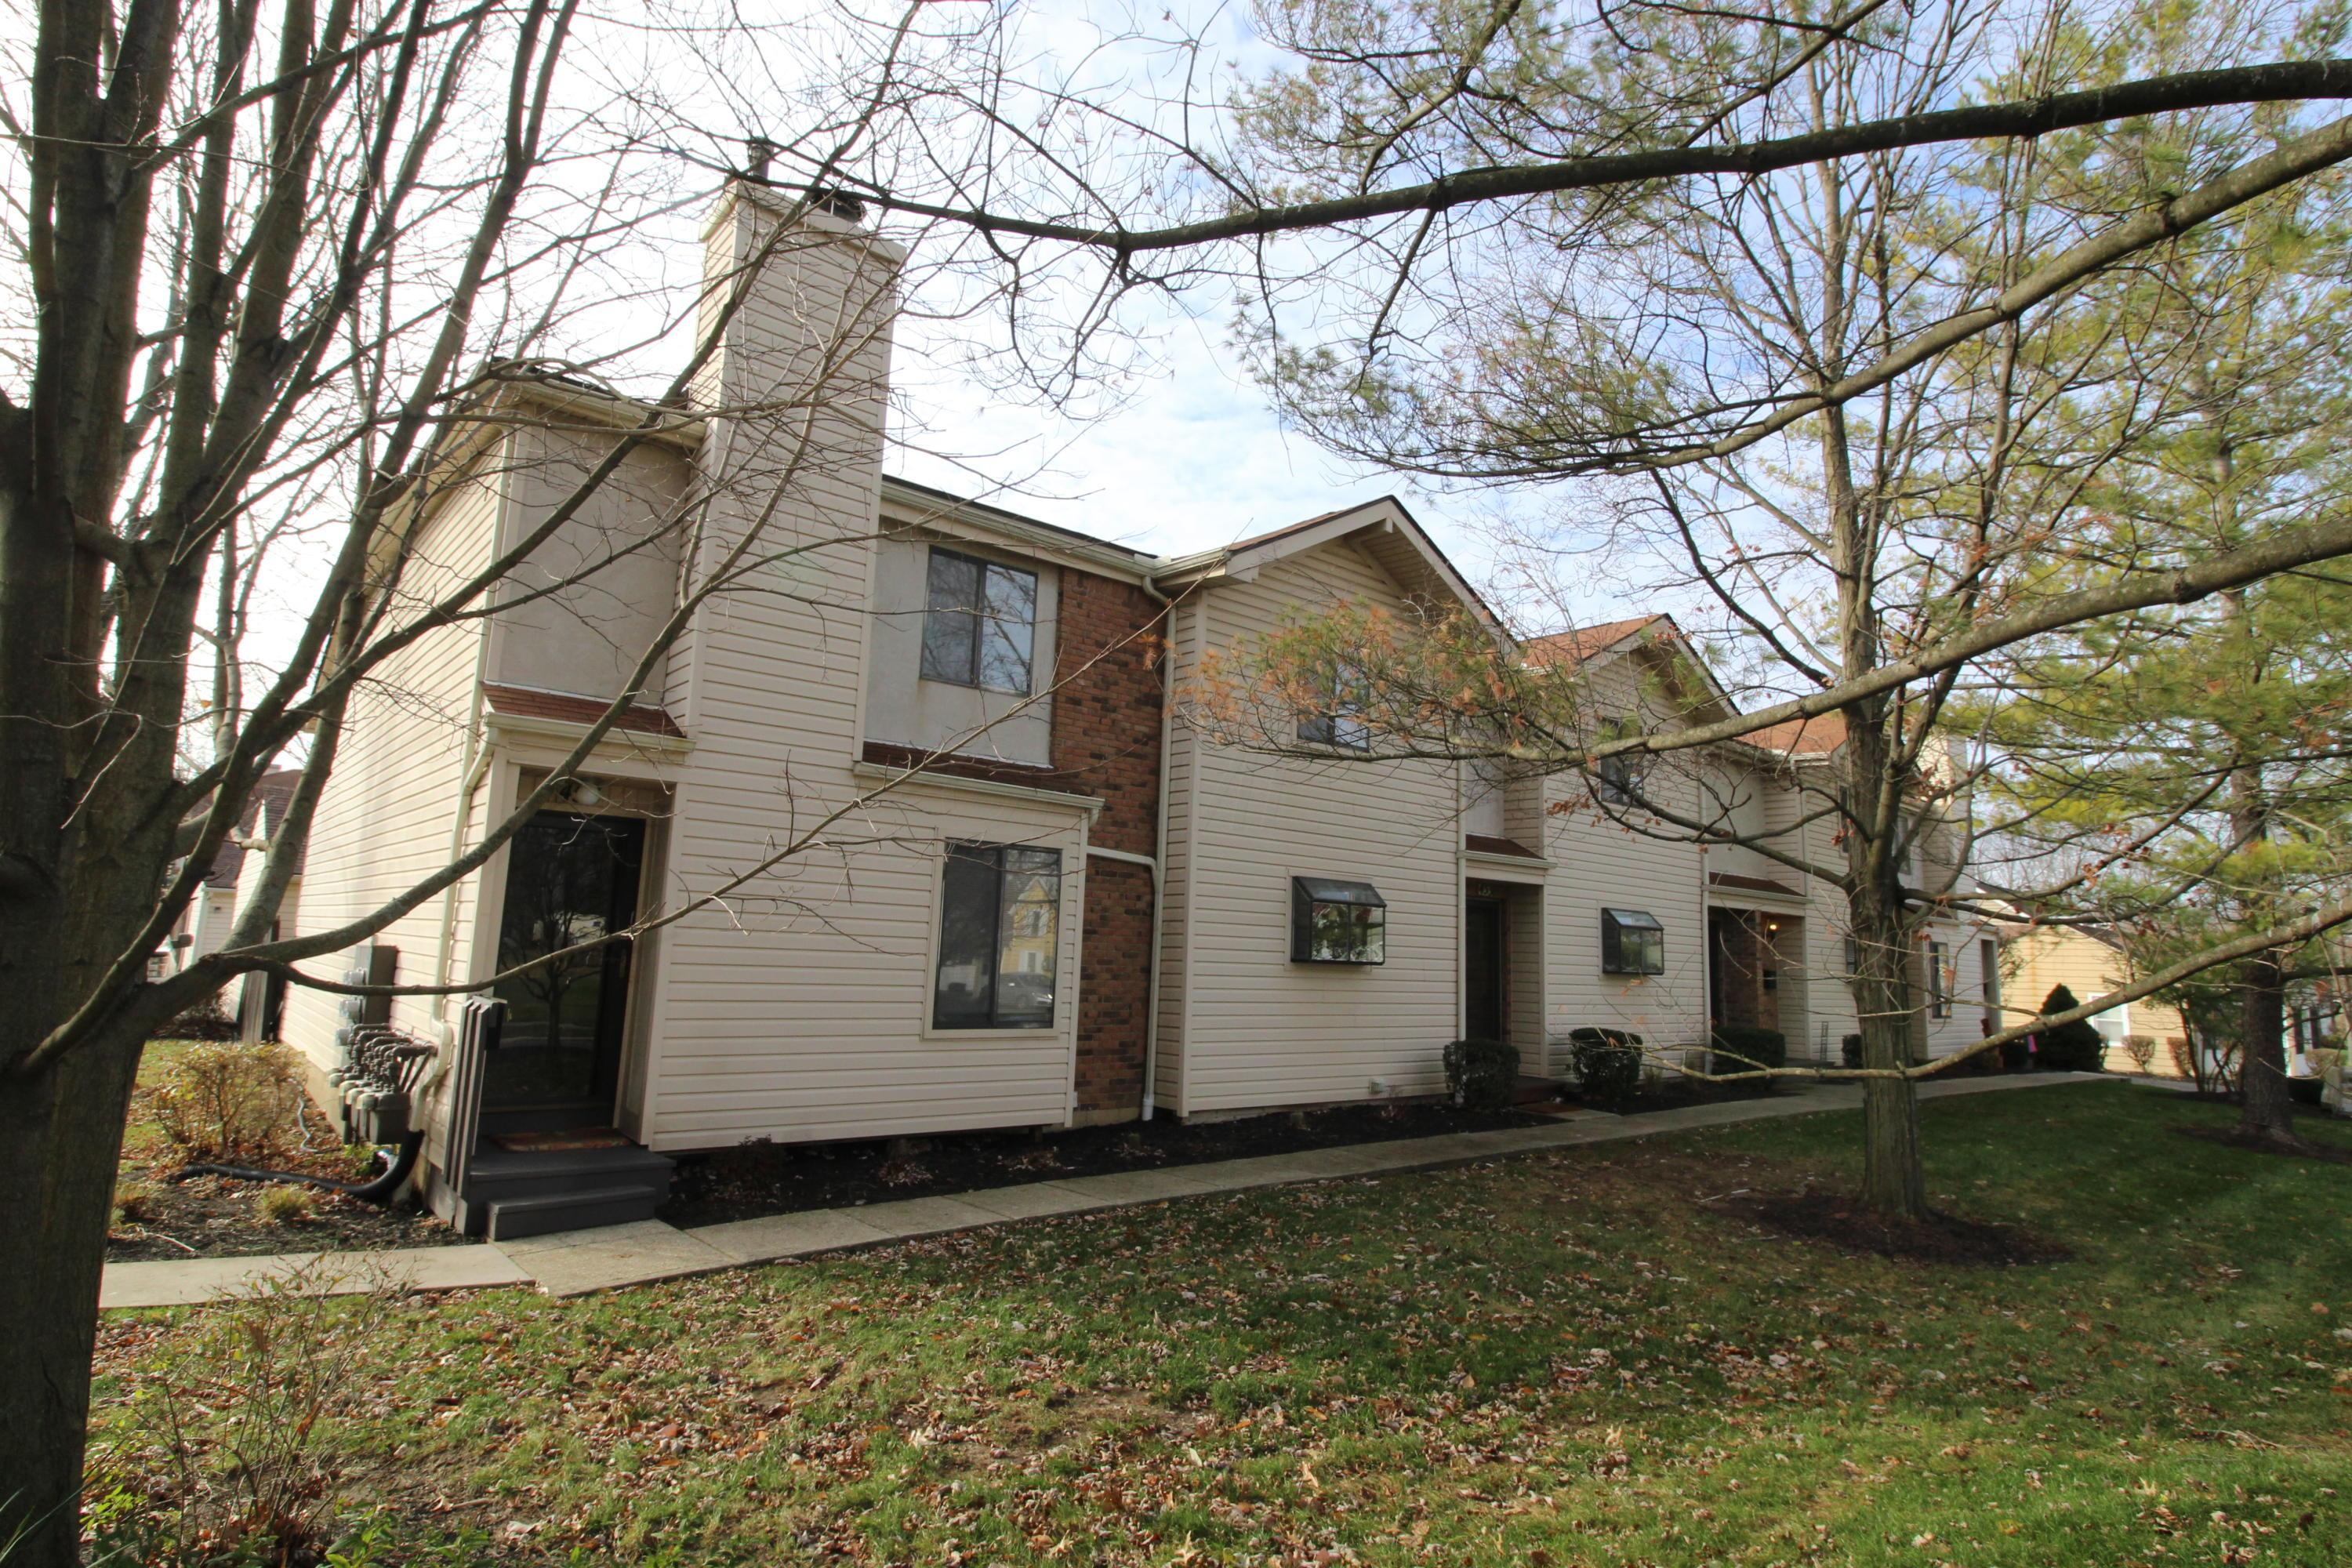 455 North Street, Worthington, Ohio 43085, 2 Bedrooms Bedrooms, ,2 BathroomsBathrooms,Residential,For Sale,North,220040764